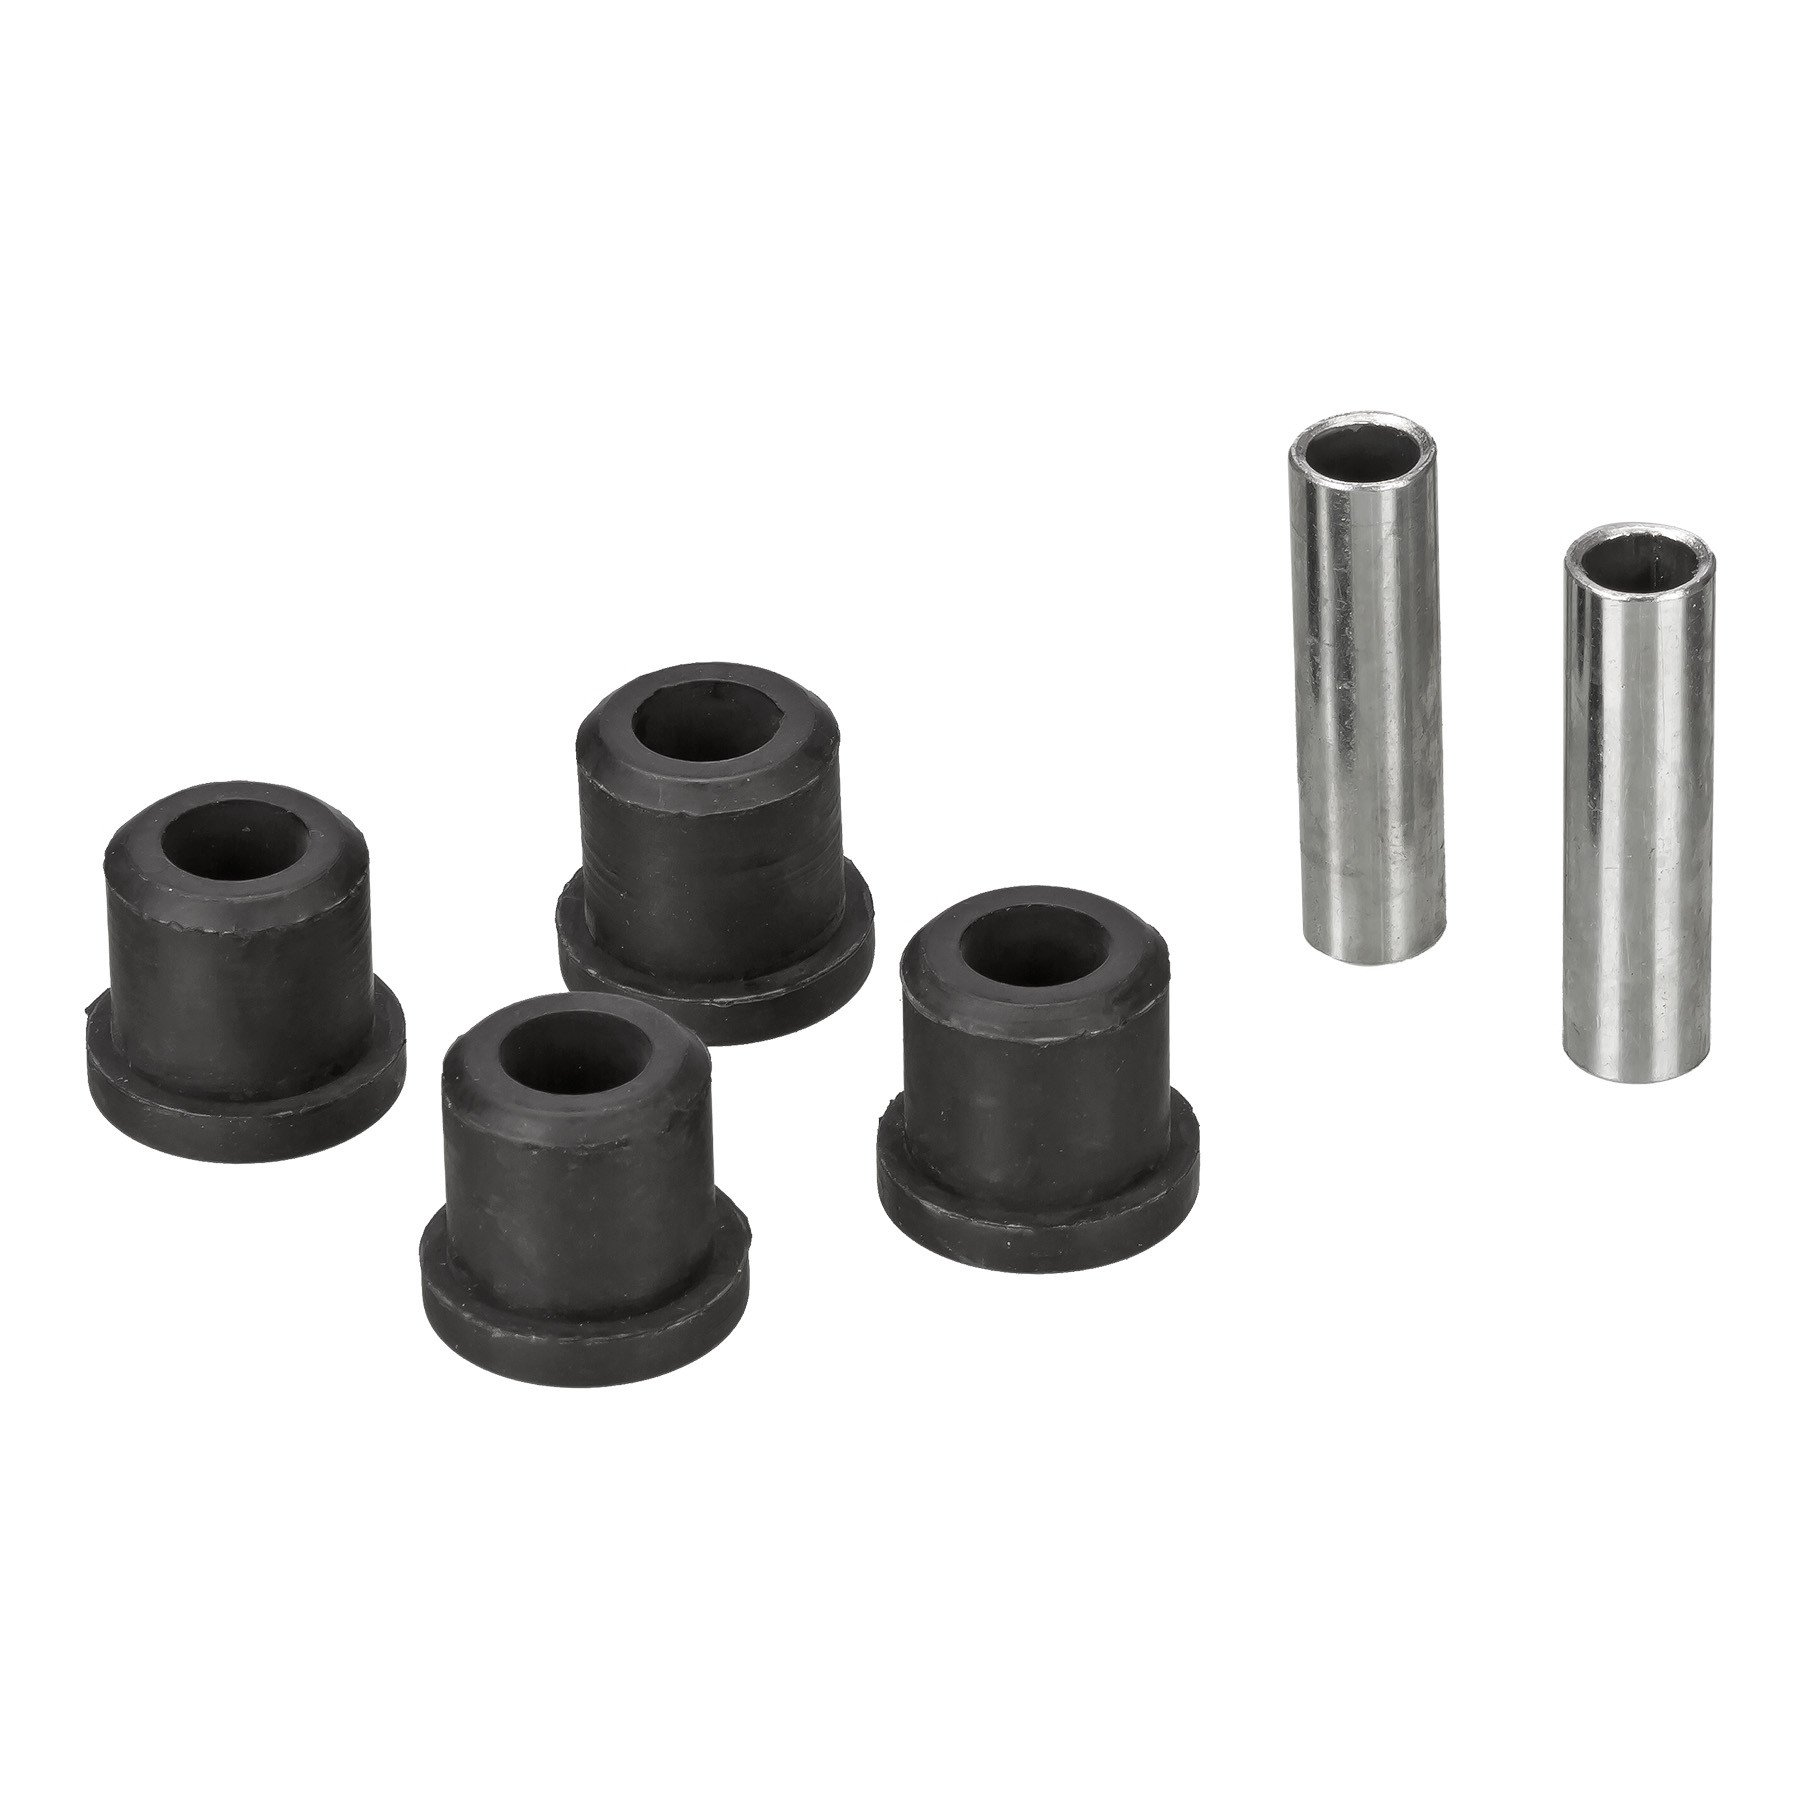 Jb Carts Ezgo Txt Leaf Spring Bushing Kit